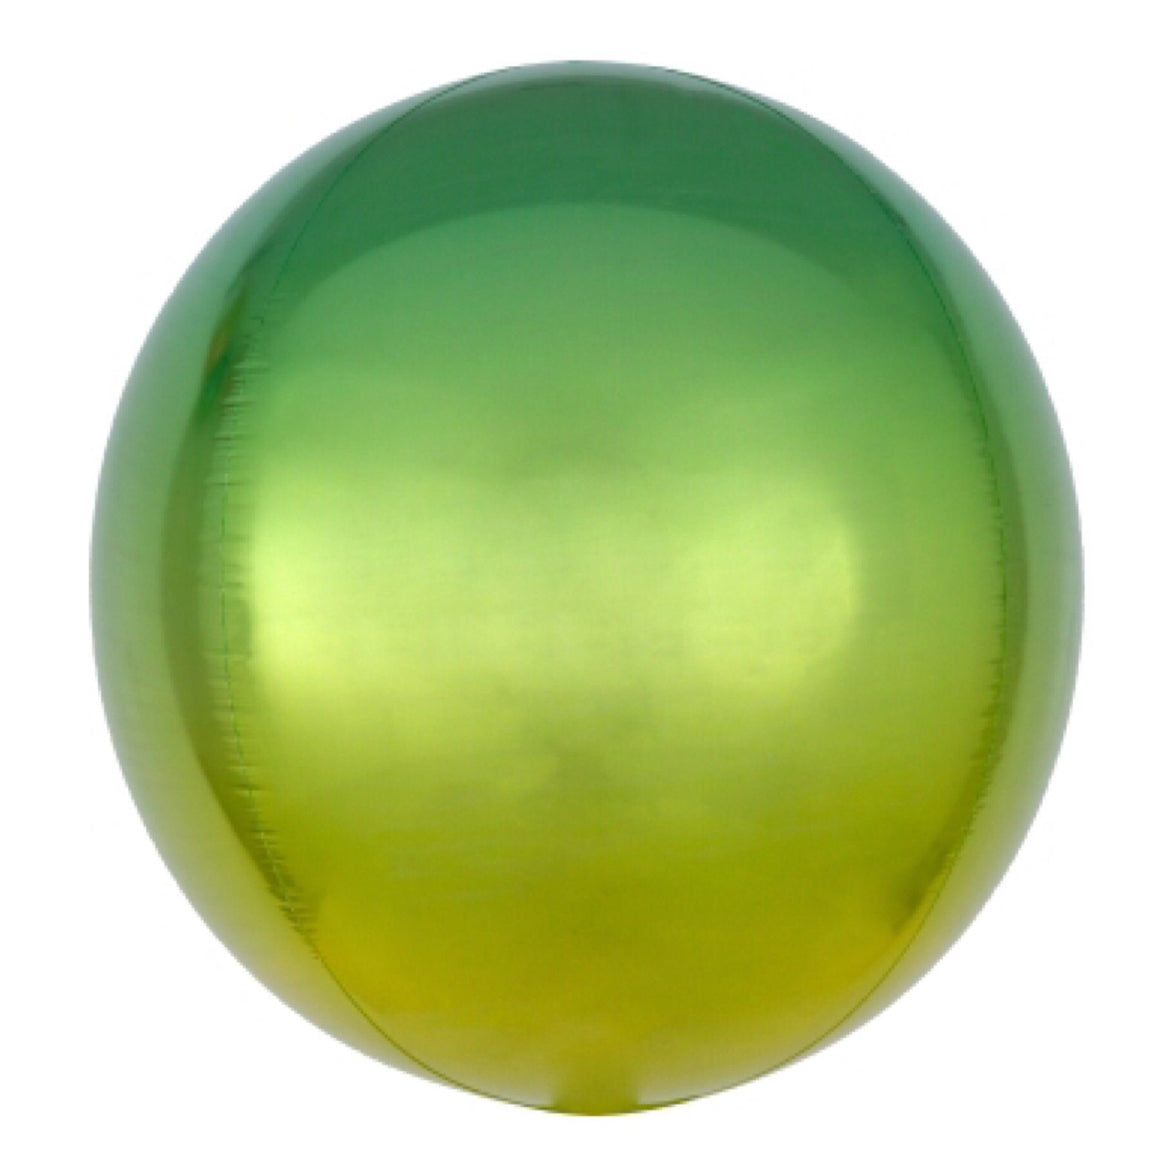 "BALLOON BAR - 16"" ORBZ ROUND OMBRE GREEN YELLOW, Balloons, Anagram - Bon + Co. Party Studio"